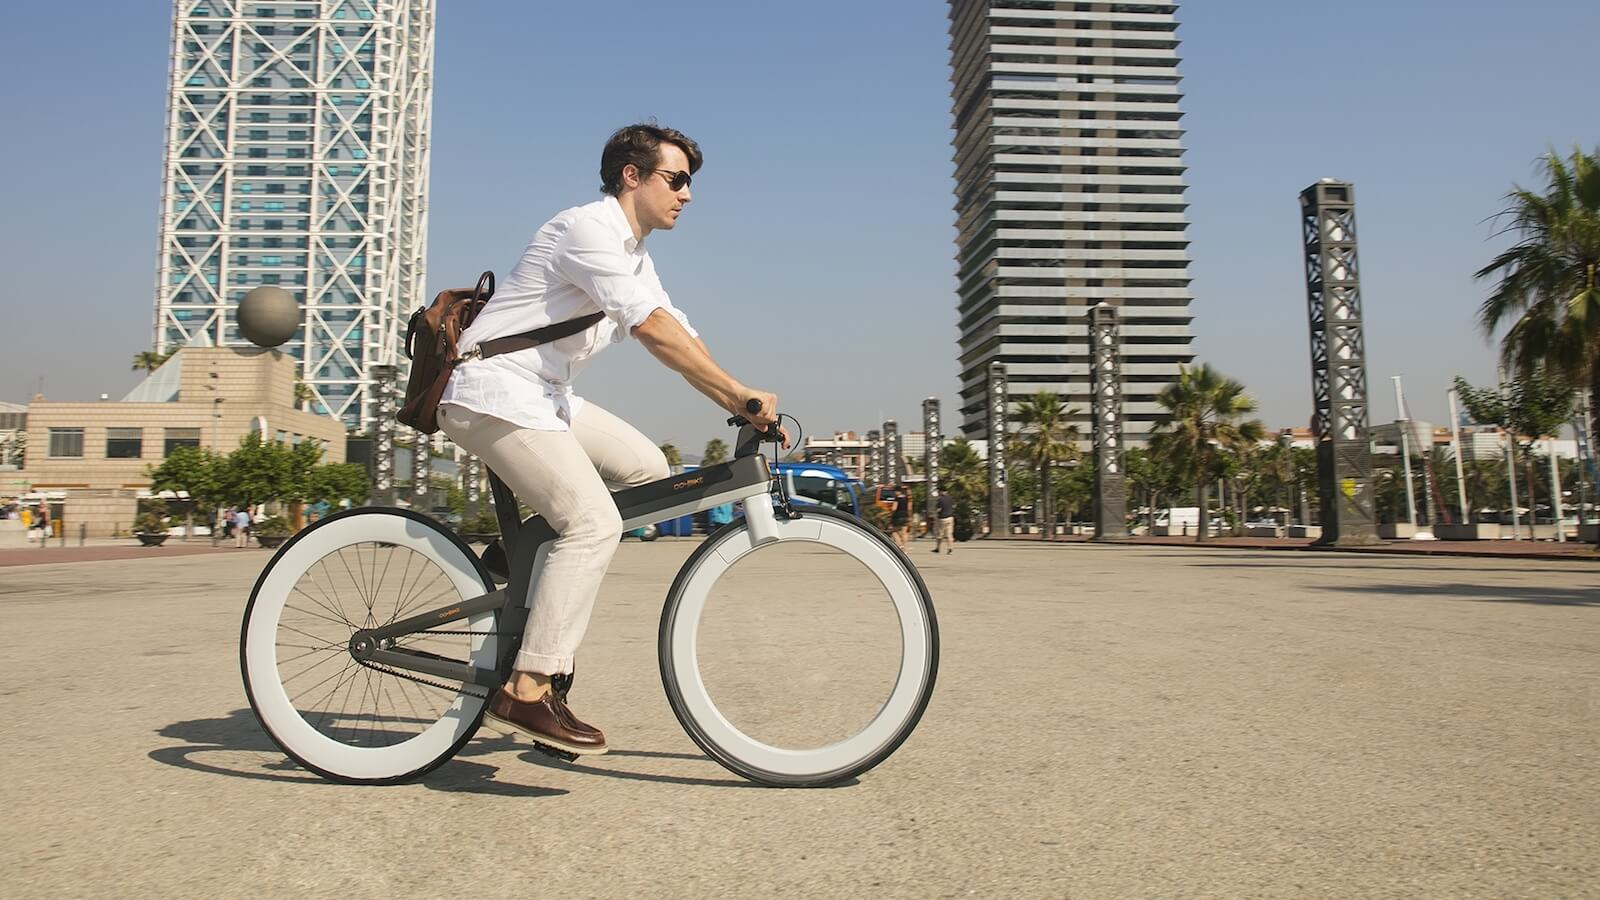 OOHBIKE conceptual eBike offers storage room in the wheel